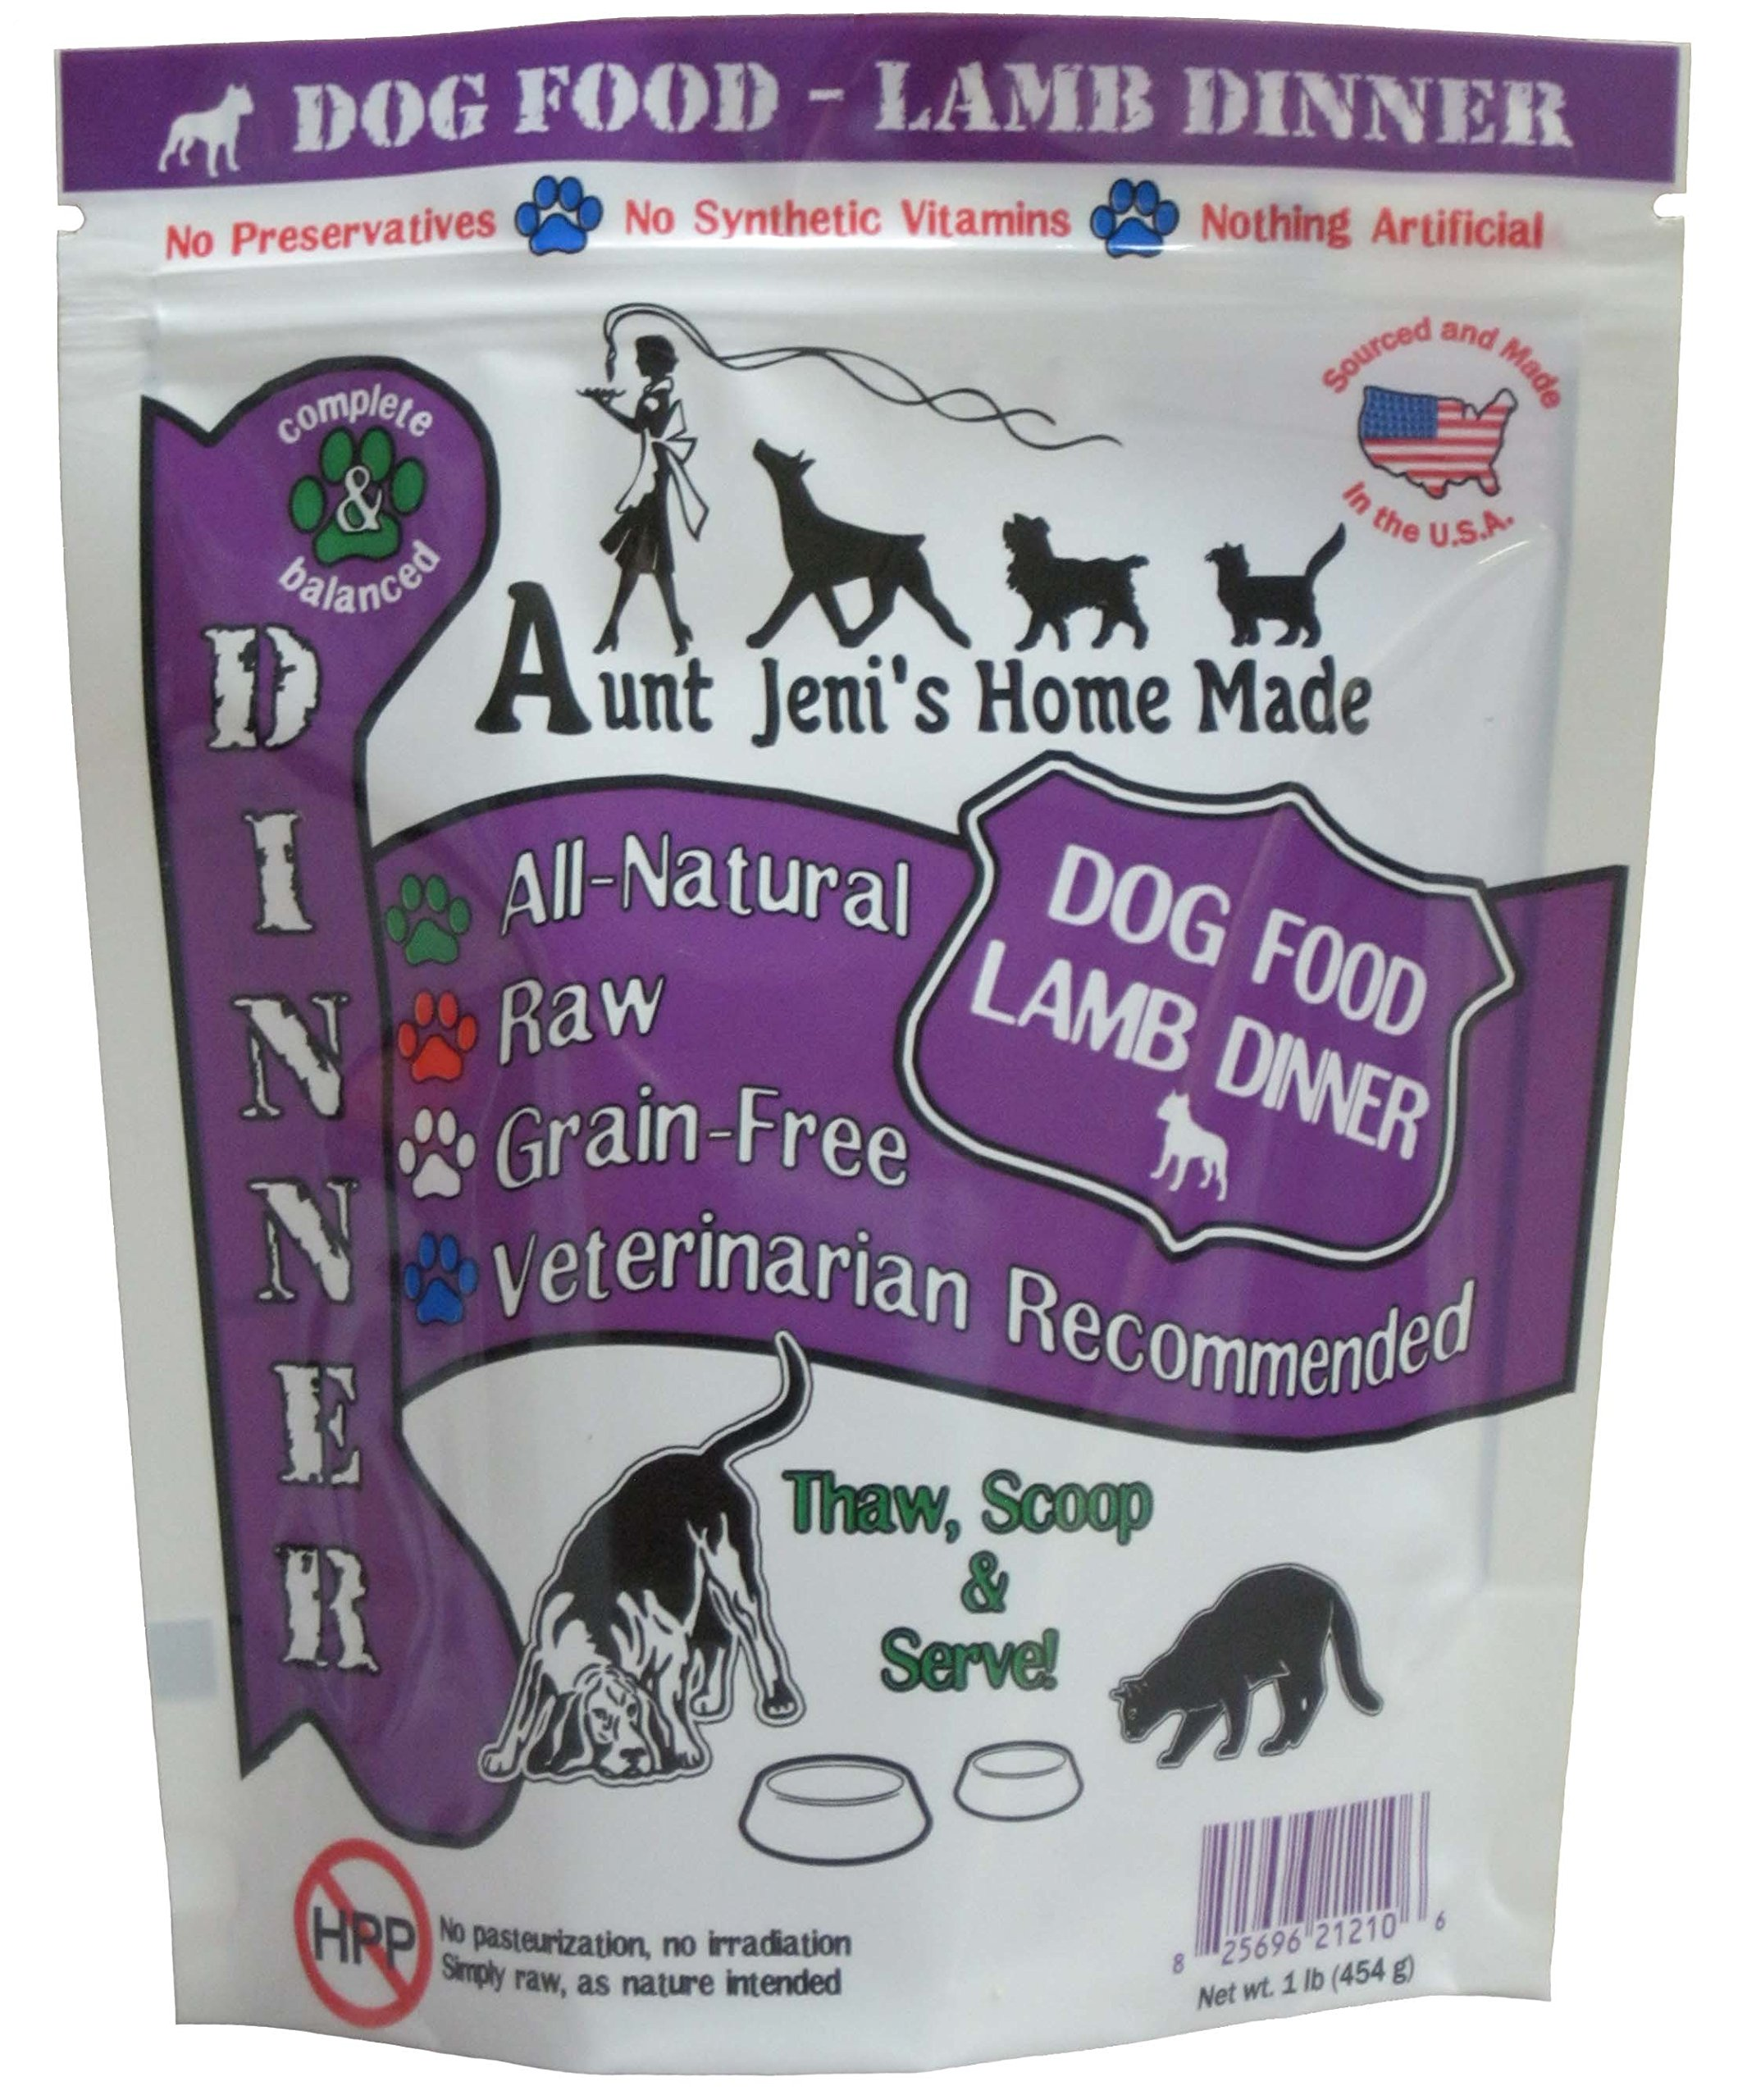 Aunt Jeni's Home Made Frozen Pet Food, Dog Food Lamb Dinner, 20 lb. by Aunt Jeni's Home Made